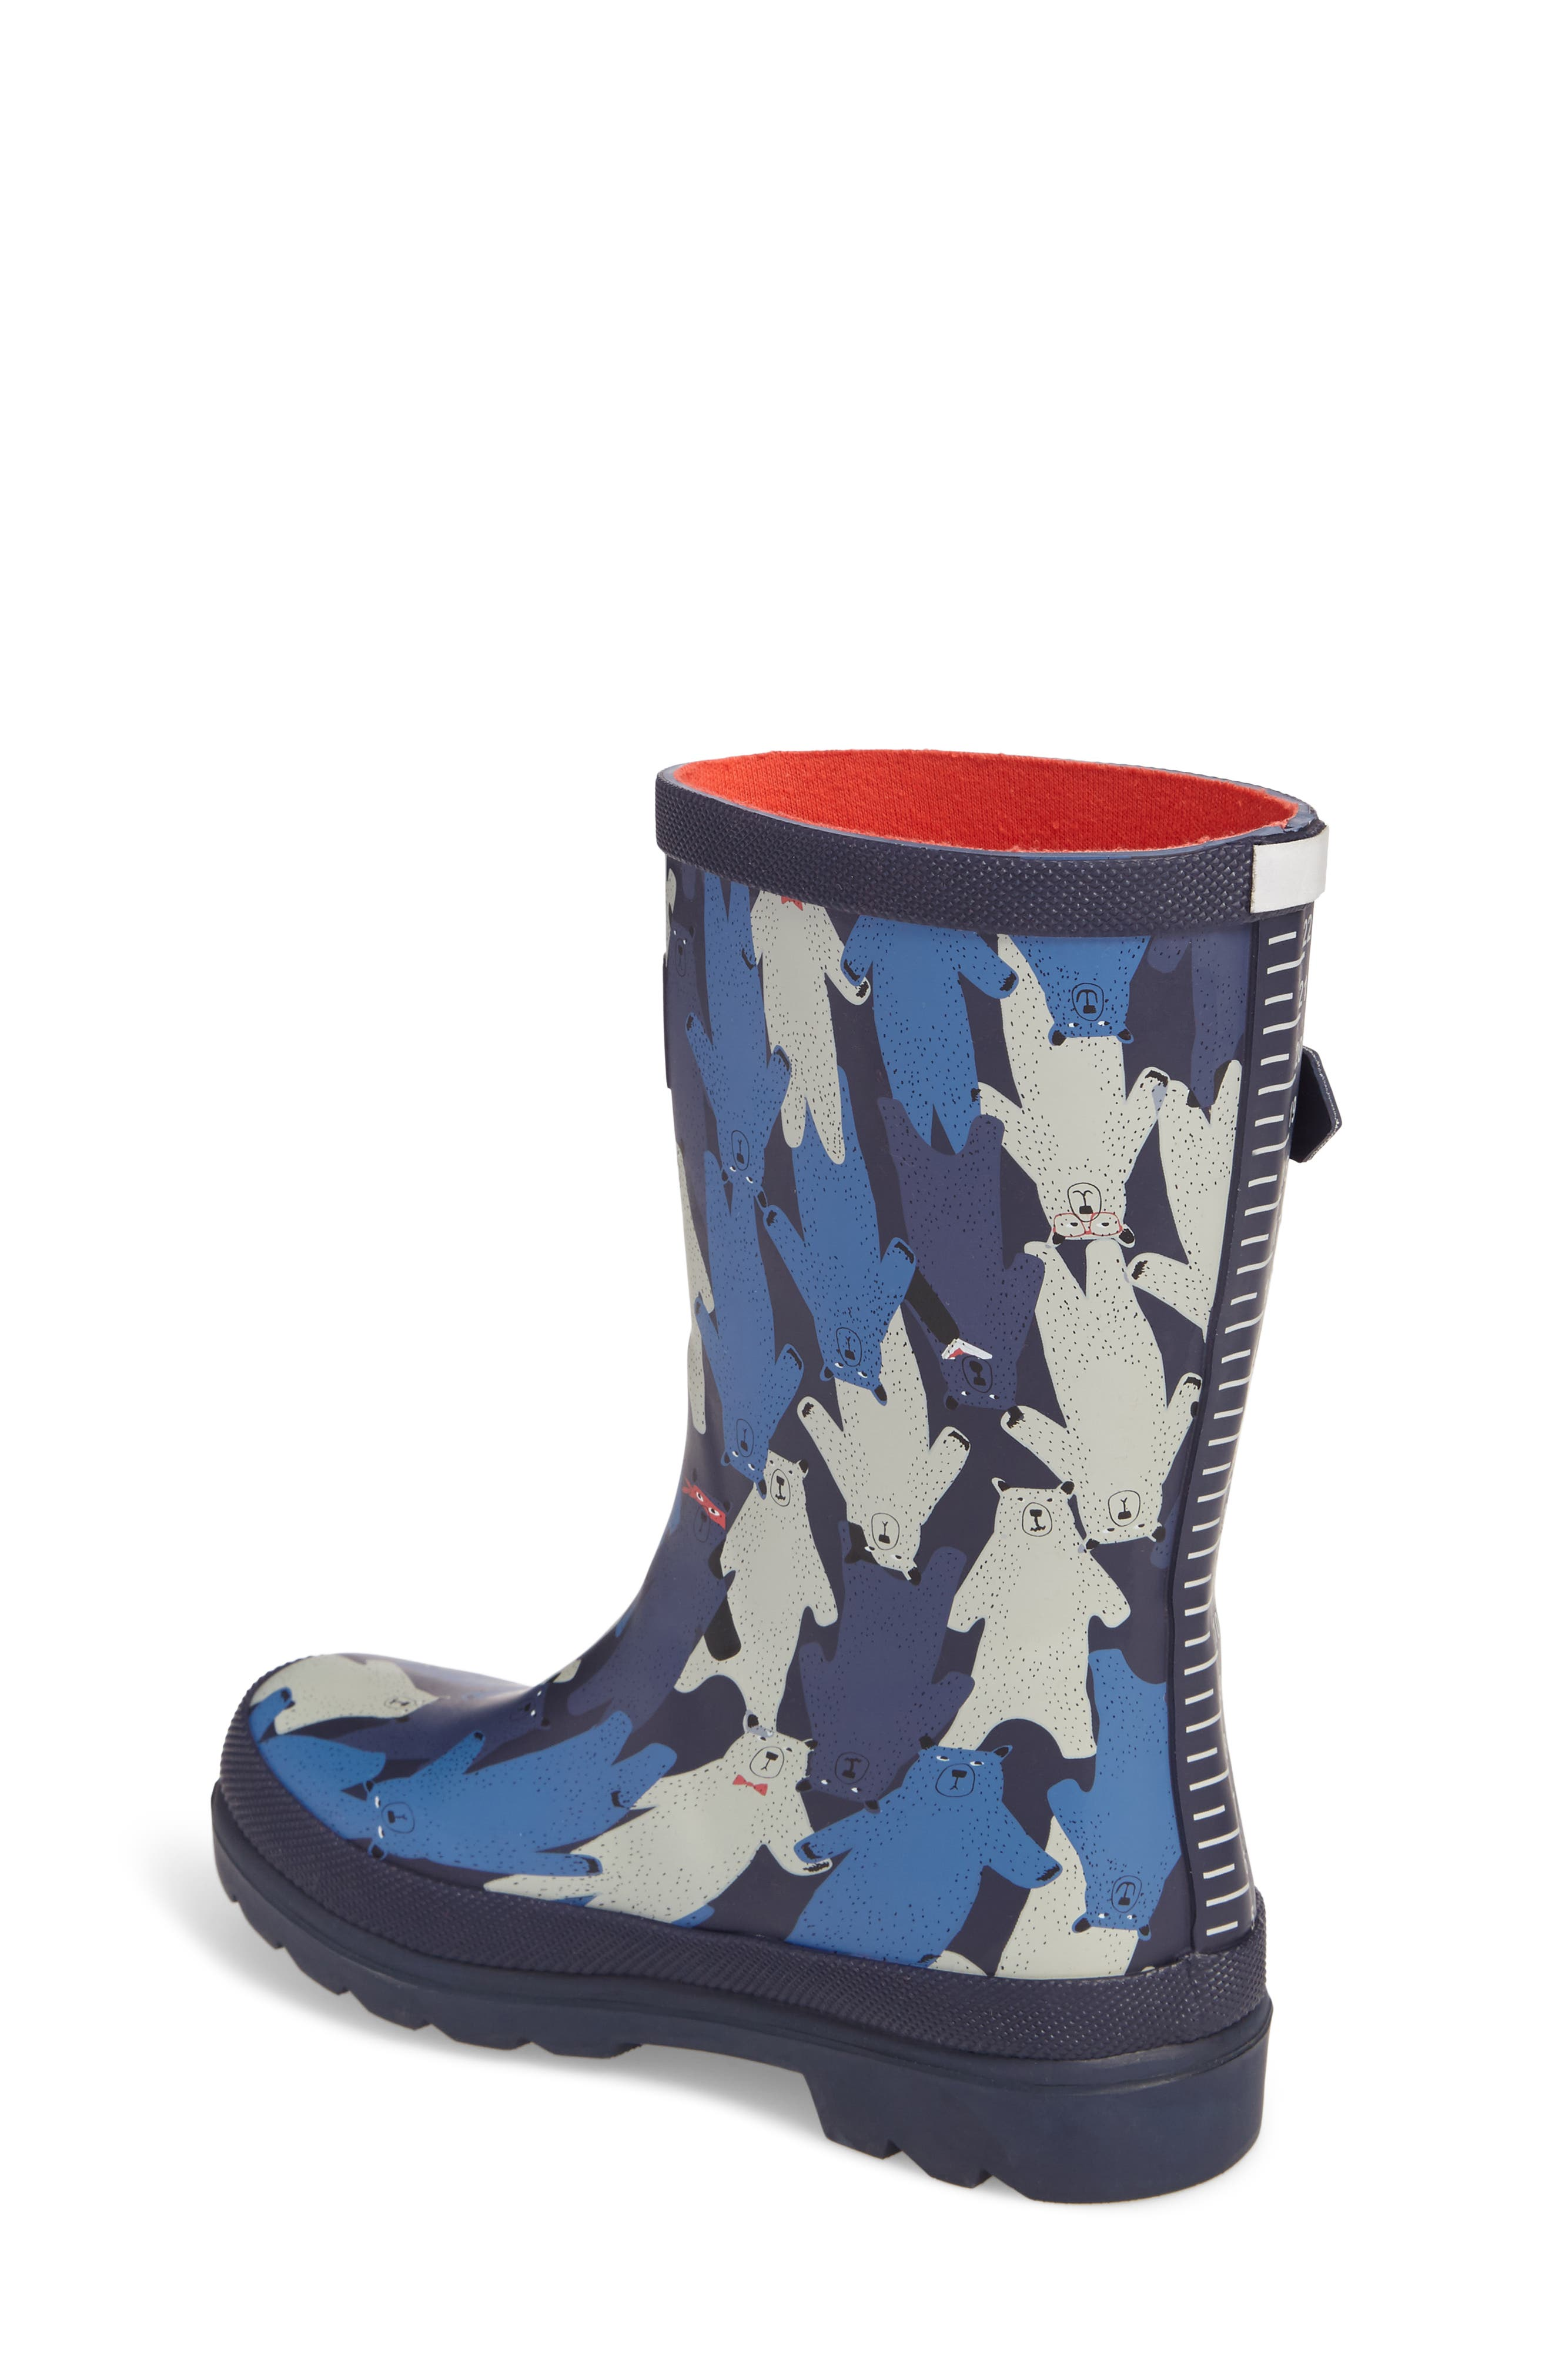 Alternate Image 2  - Joules Printed Waterproof Rain Boot (Toddler, Little Kid & Big Kid)